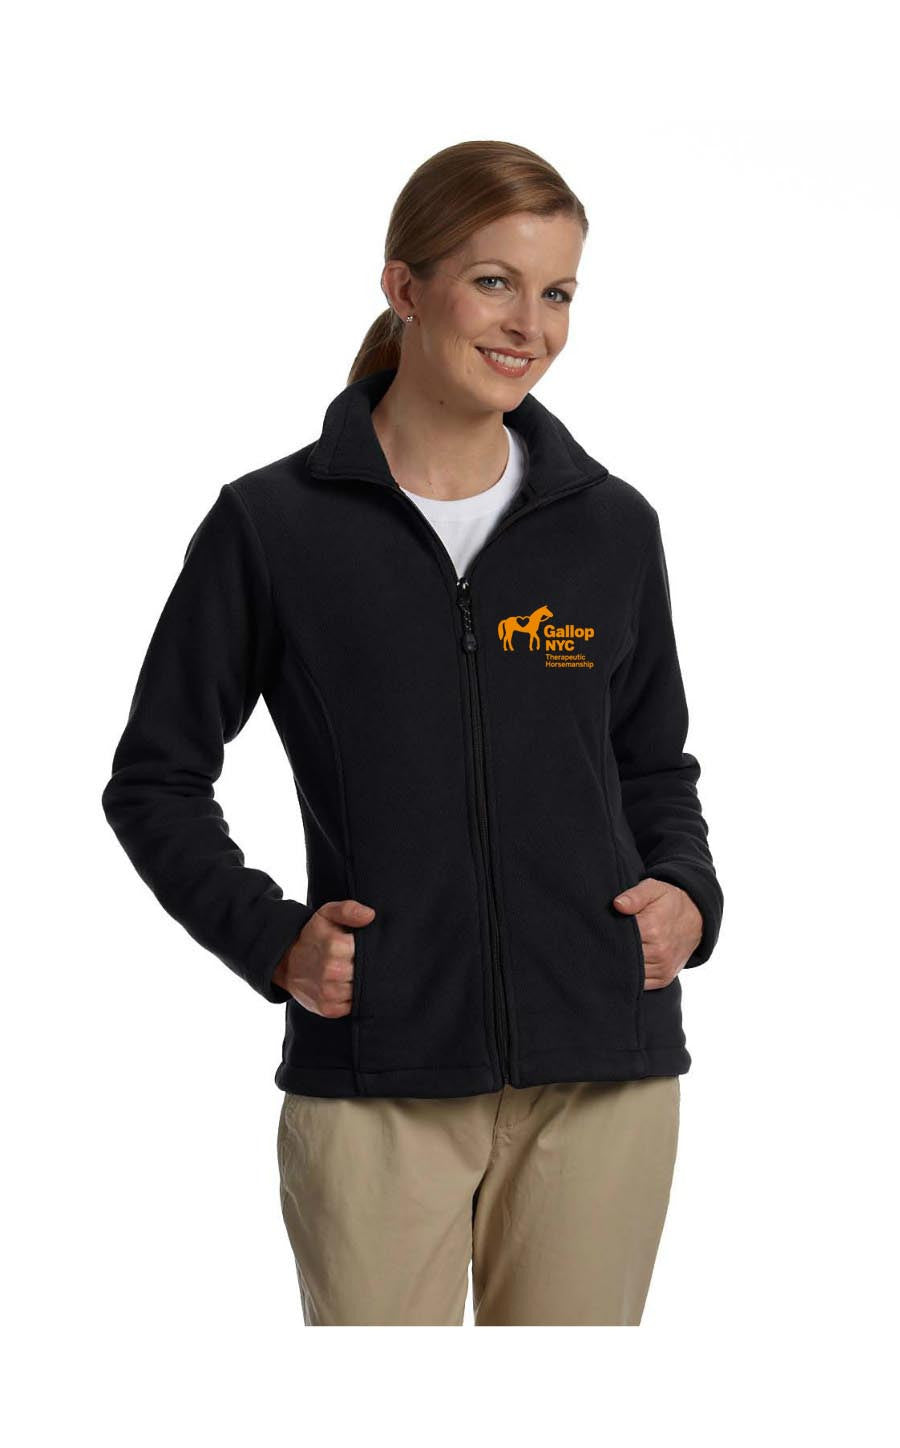 GallopNYC Zipup ladies' fleece